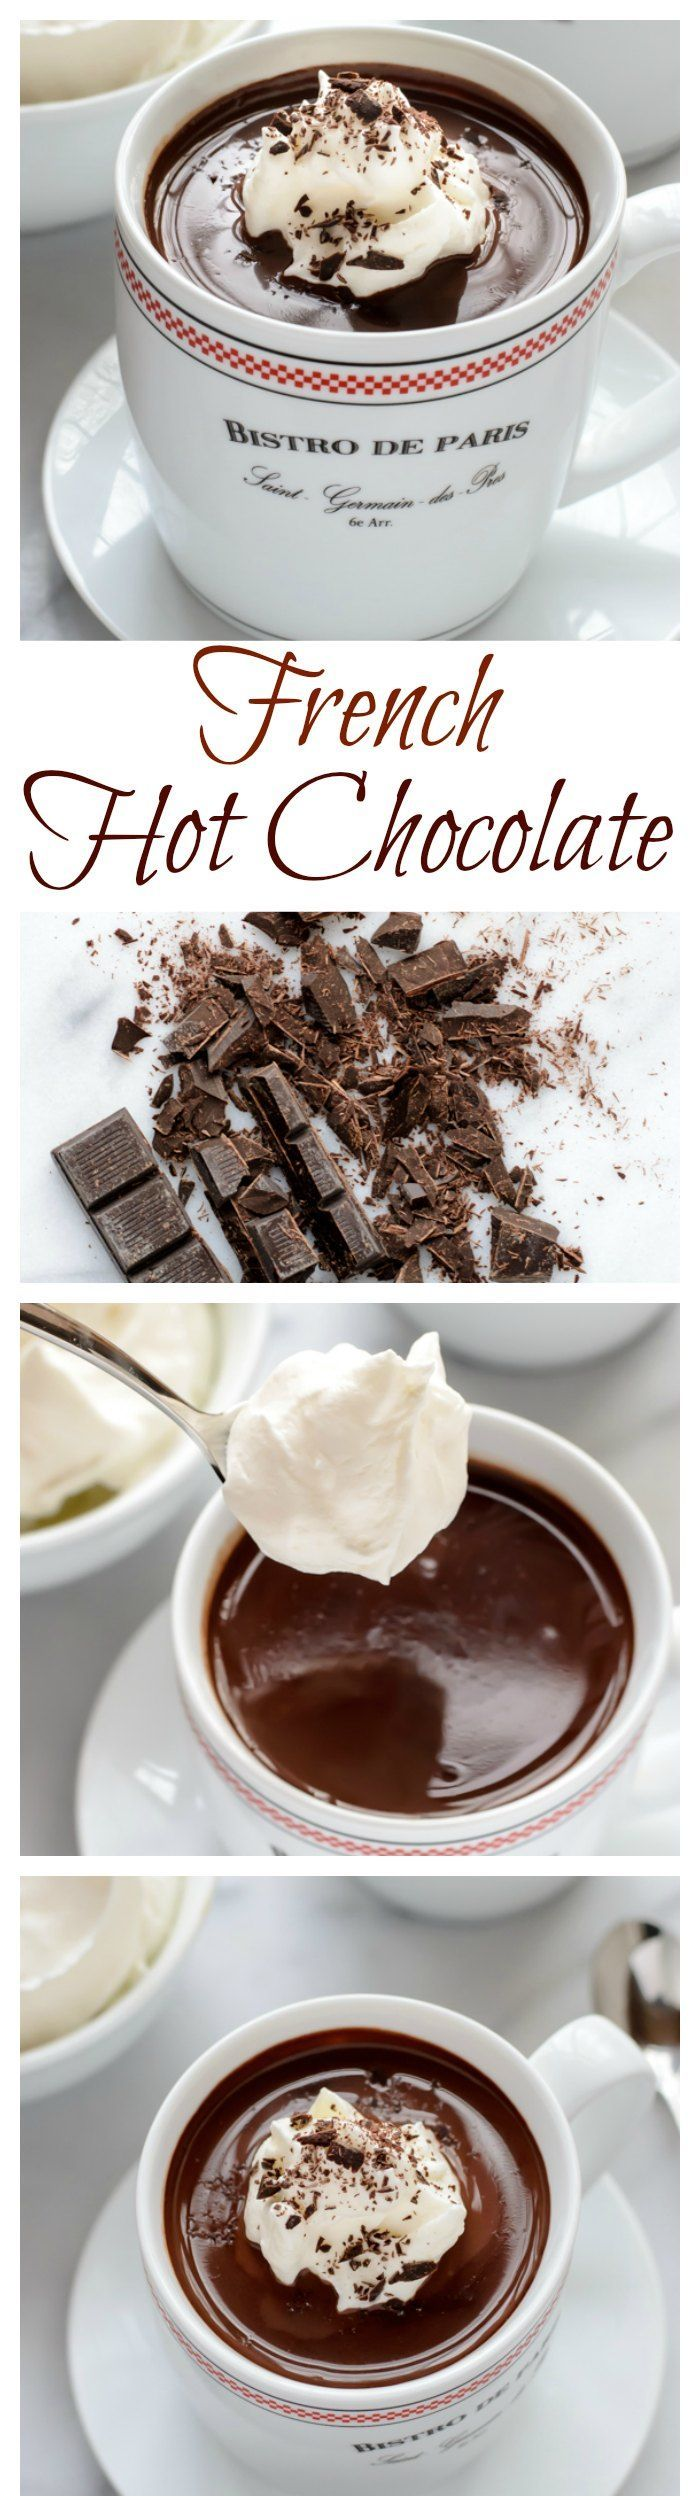 French Hot Chocolate. An easy recipe for dark hot chocolate that tastes just the kind served in Paris cafes!